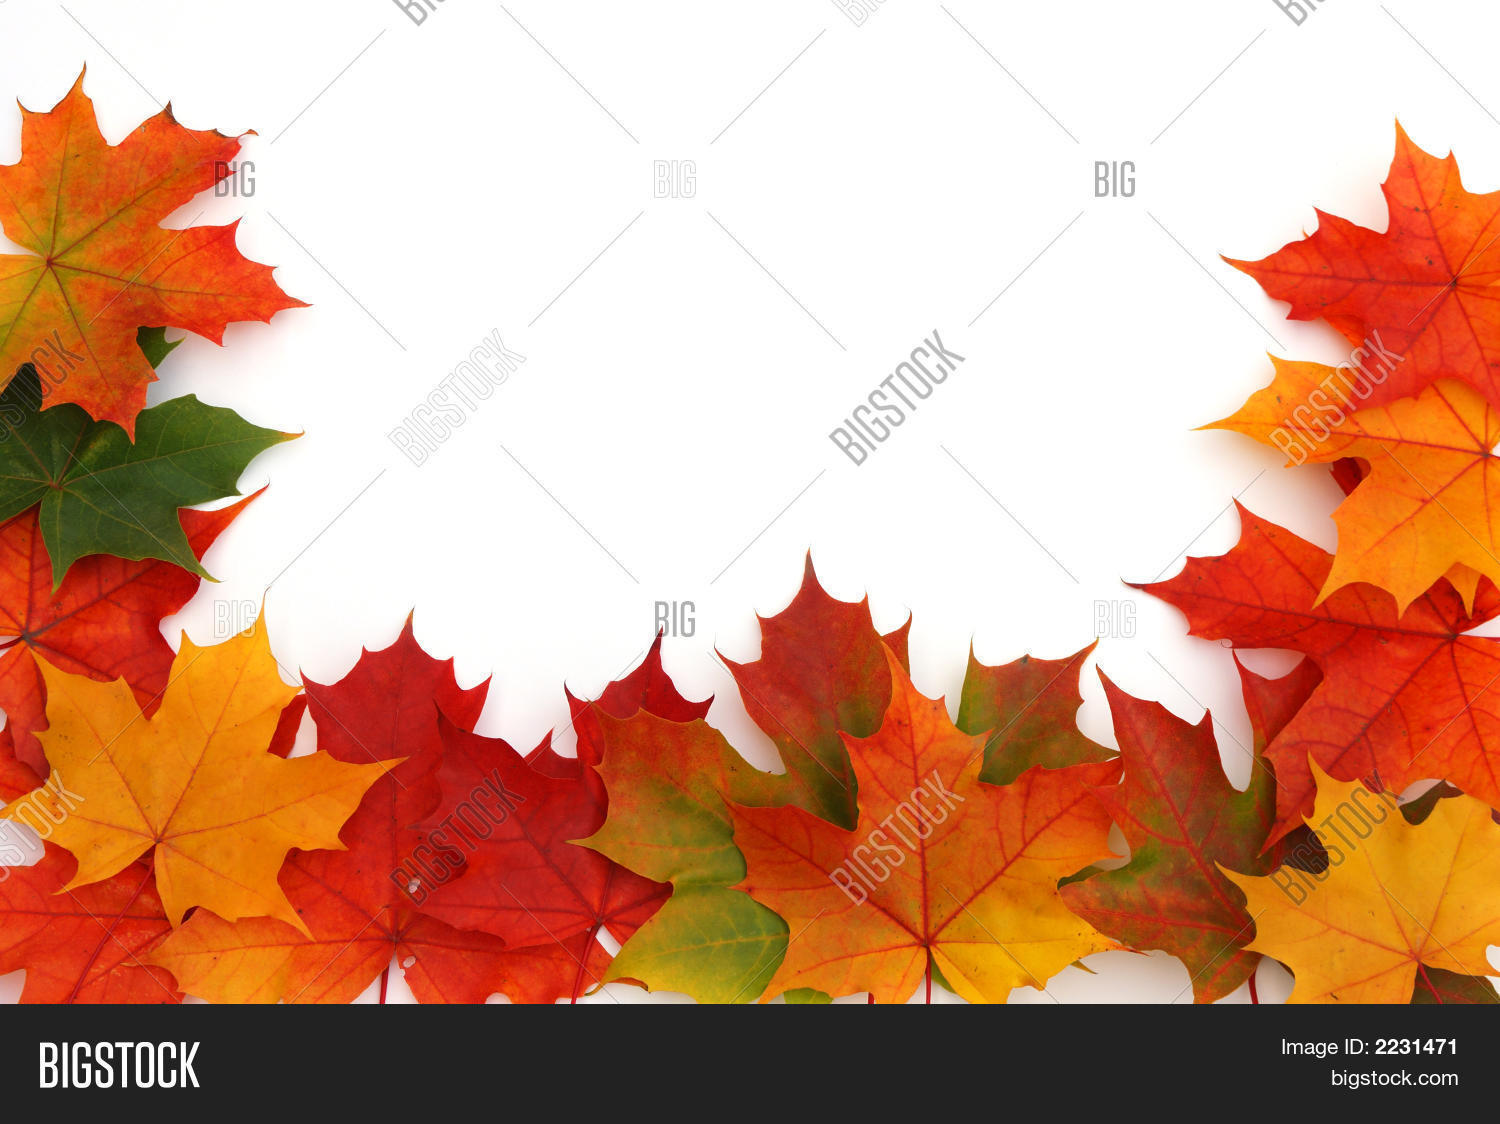 Colorful Maple Leaf Image & Photo (Free Trial) | Bigstock